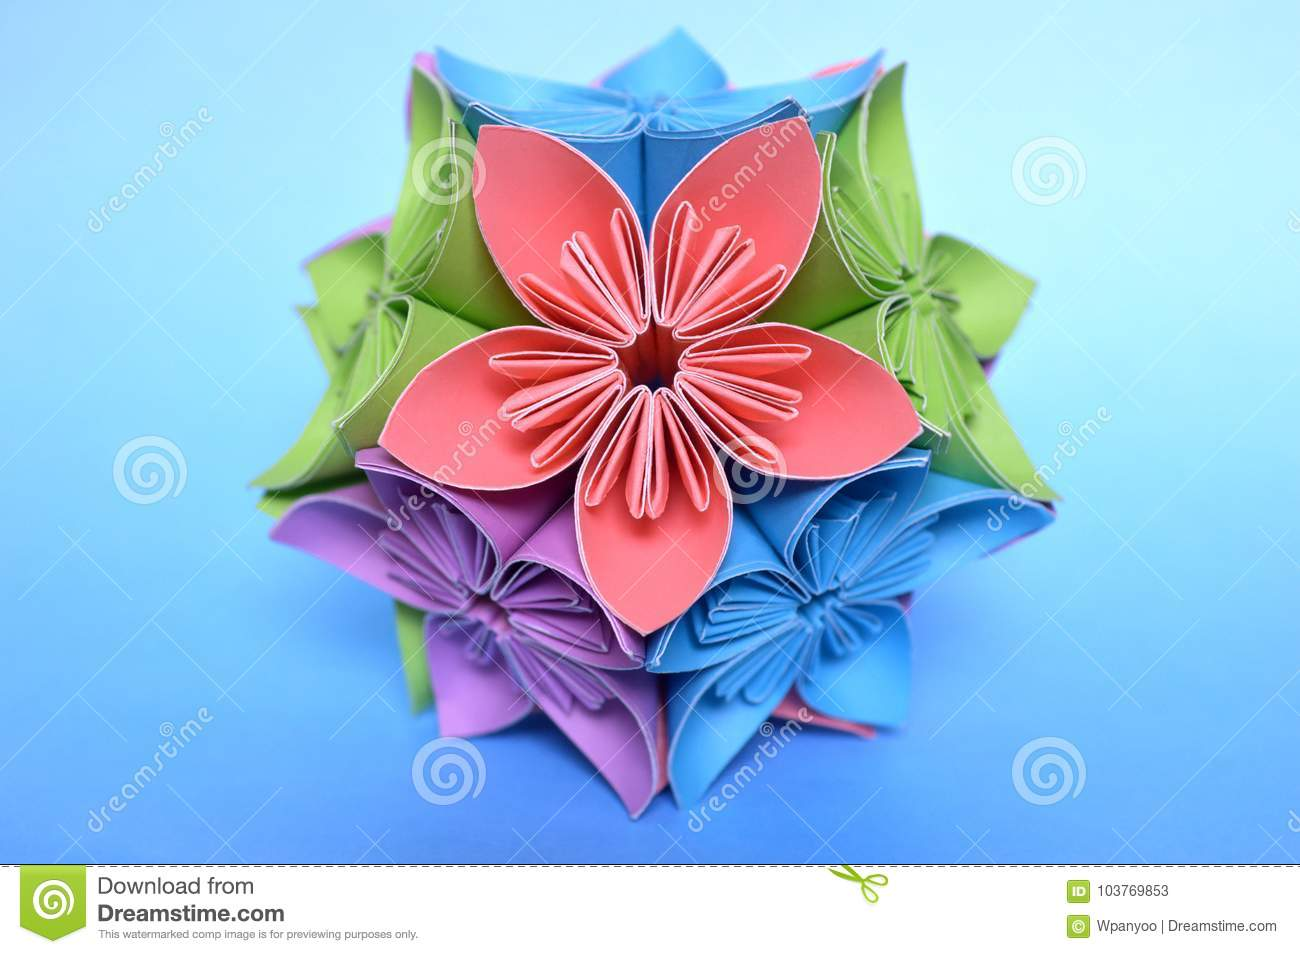 Origami kusudama flower ball stock image image of paper folding download origami kusudama flower ball stock image image of paper folding 103769853 mightylinksfo